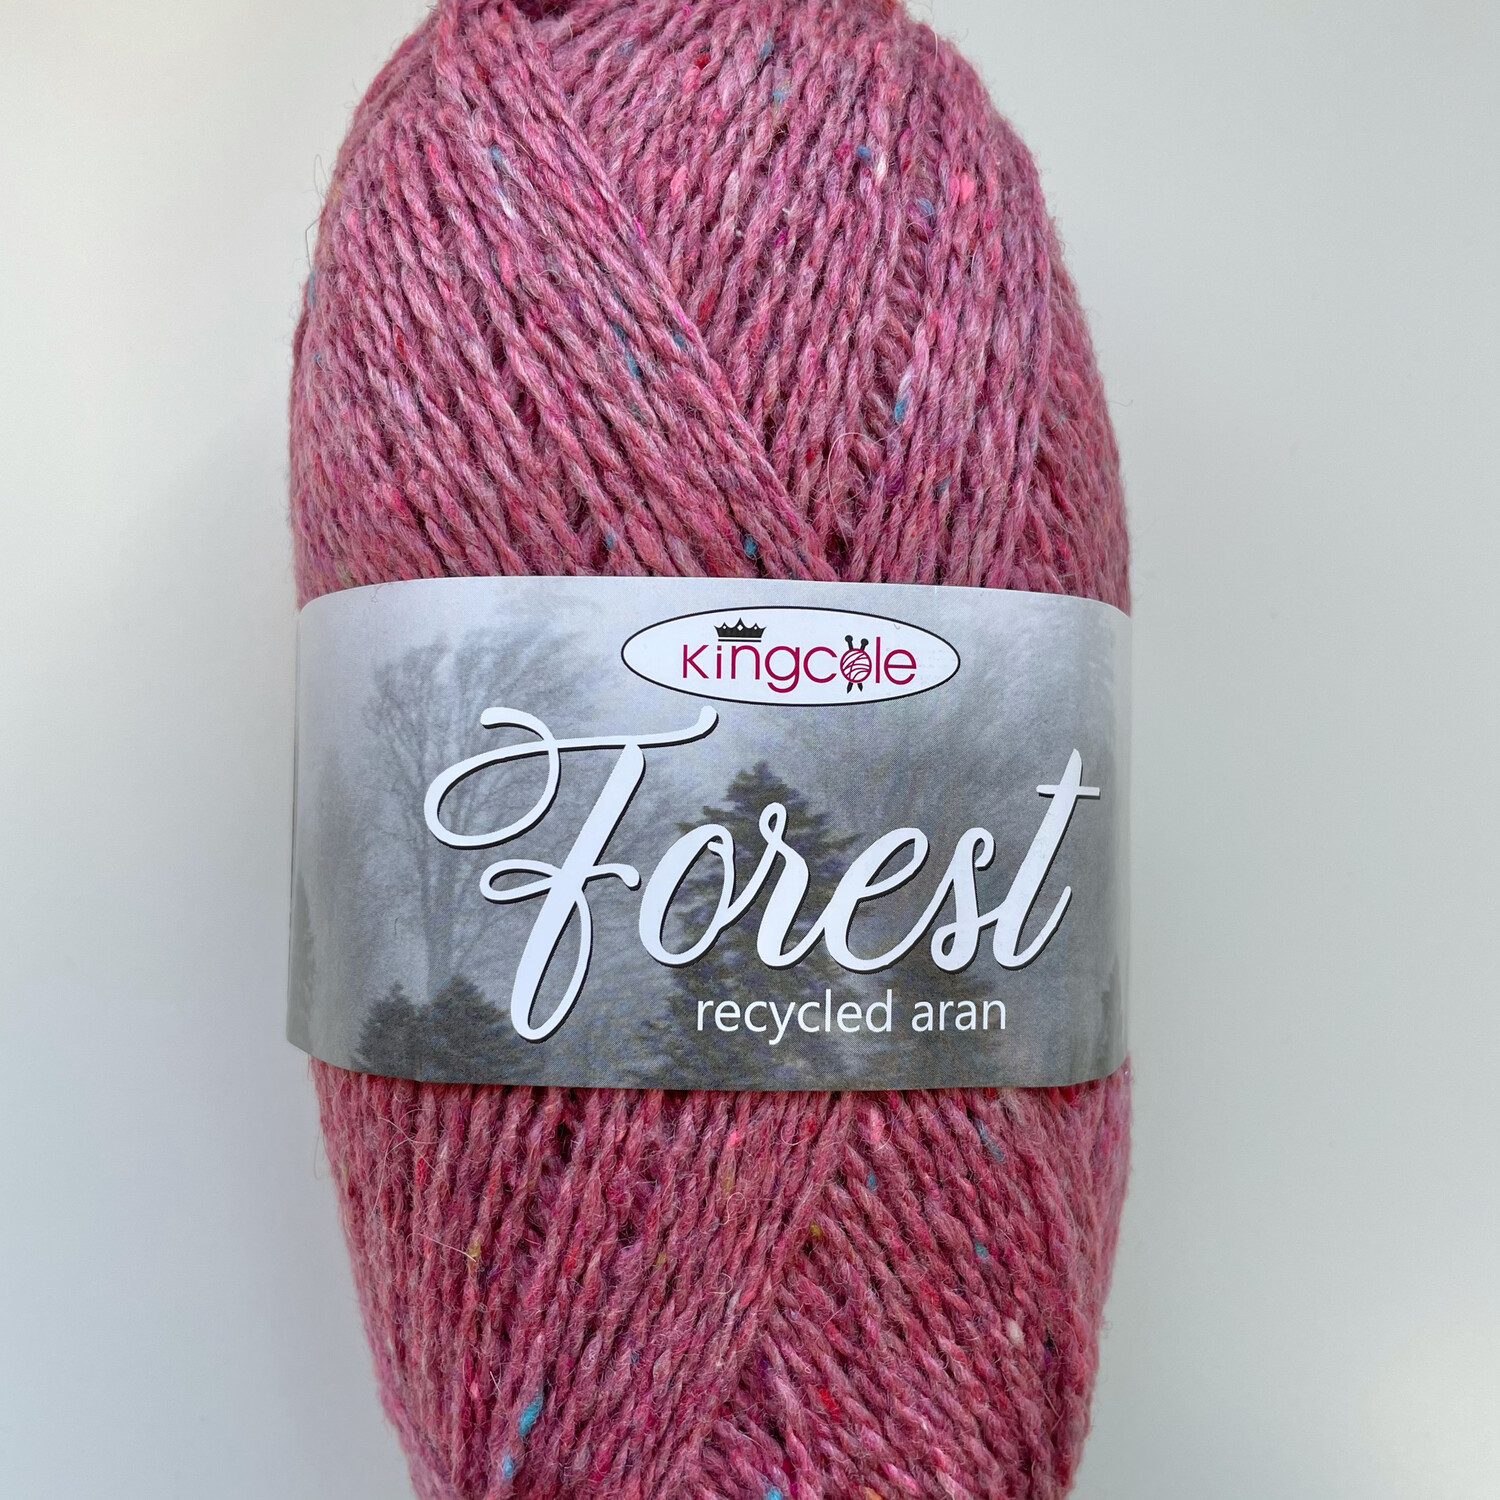 King Cole Forest Aran 100% Recycled Yarn containing 35% Wool - Sherwood Forest